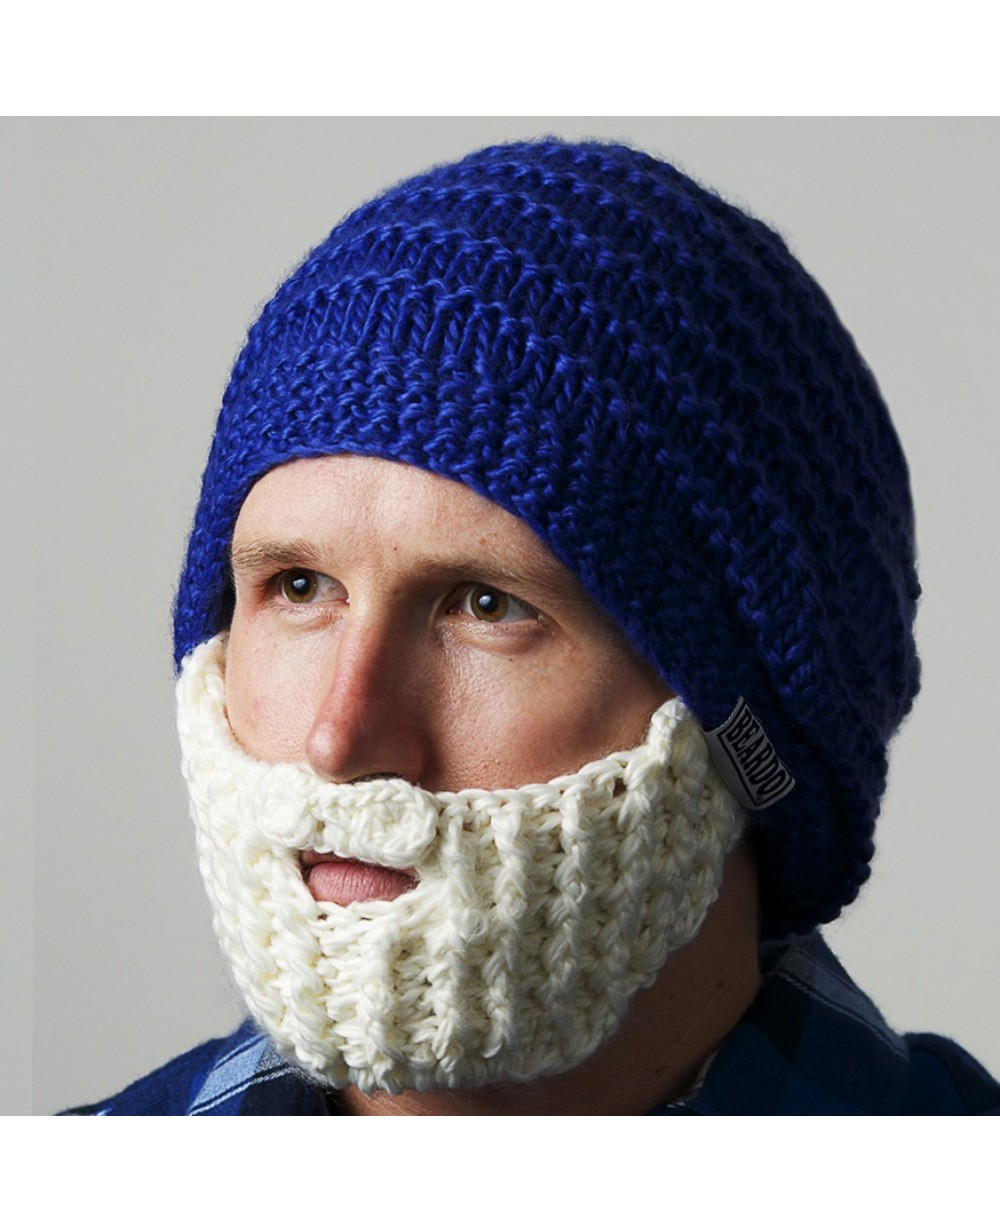 672a9d42aee More Views. Blue and White Beardo Knit Hat